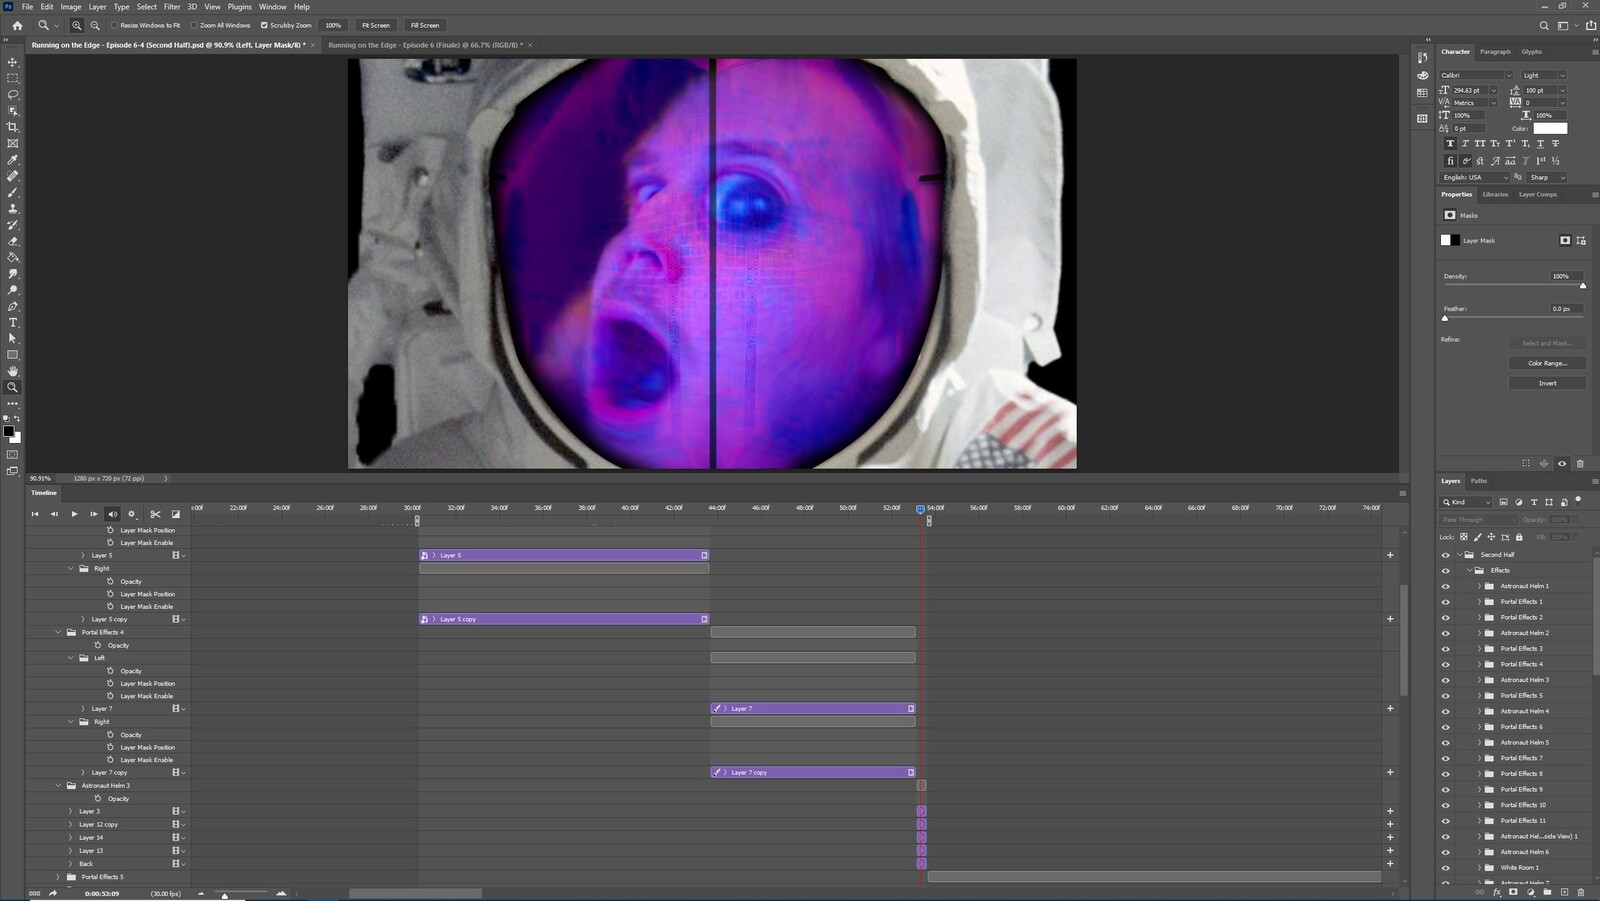 """The """"2020: A Time Oddity, Part 2"""" visual effect within Photoshop video editor"""